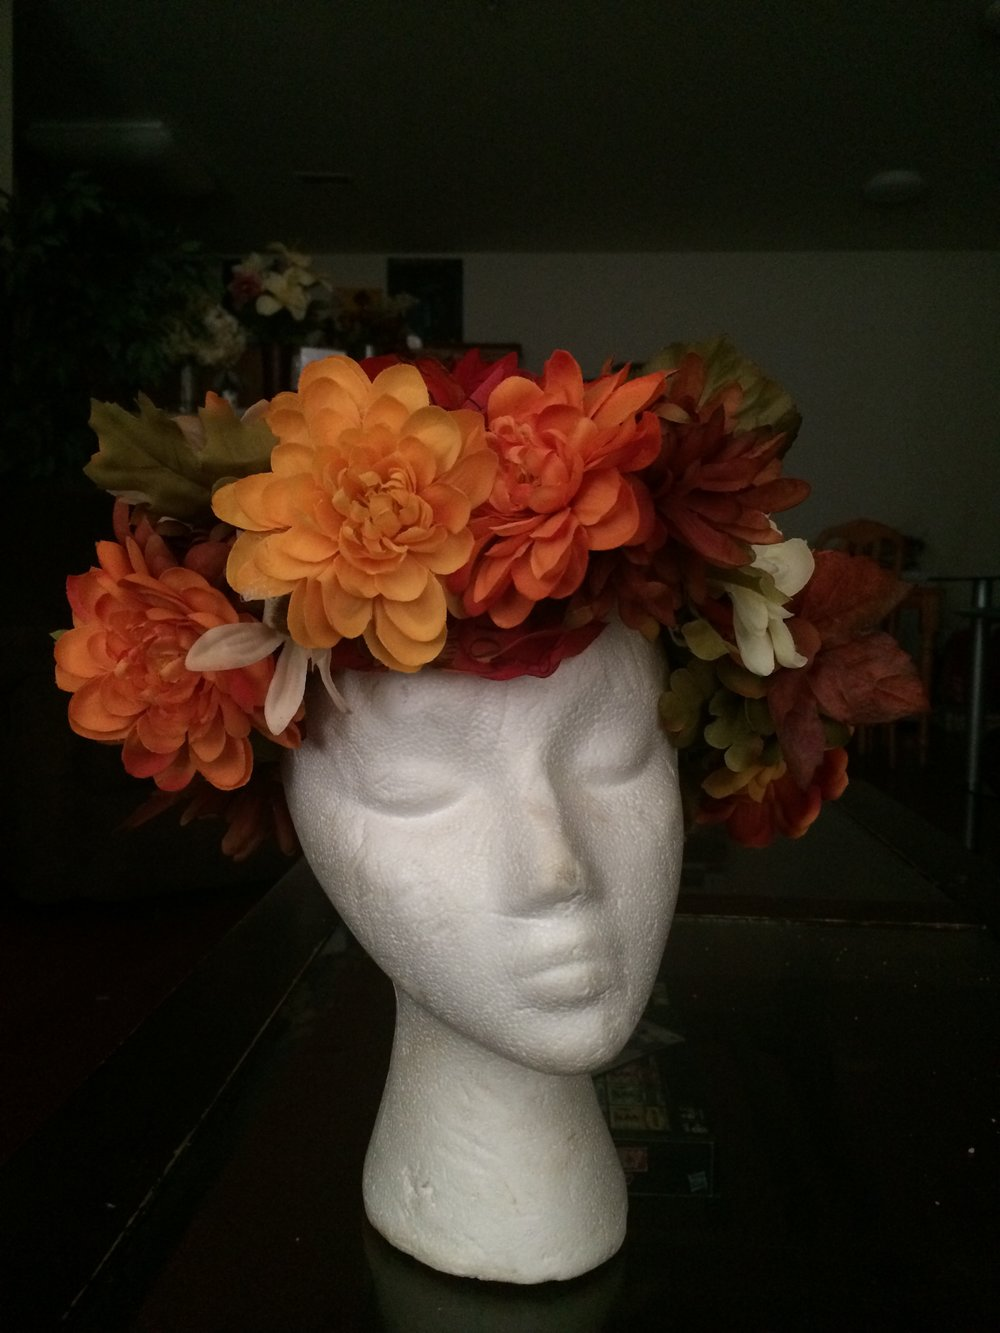 This is a flower halo I designed.